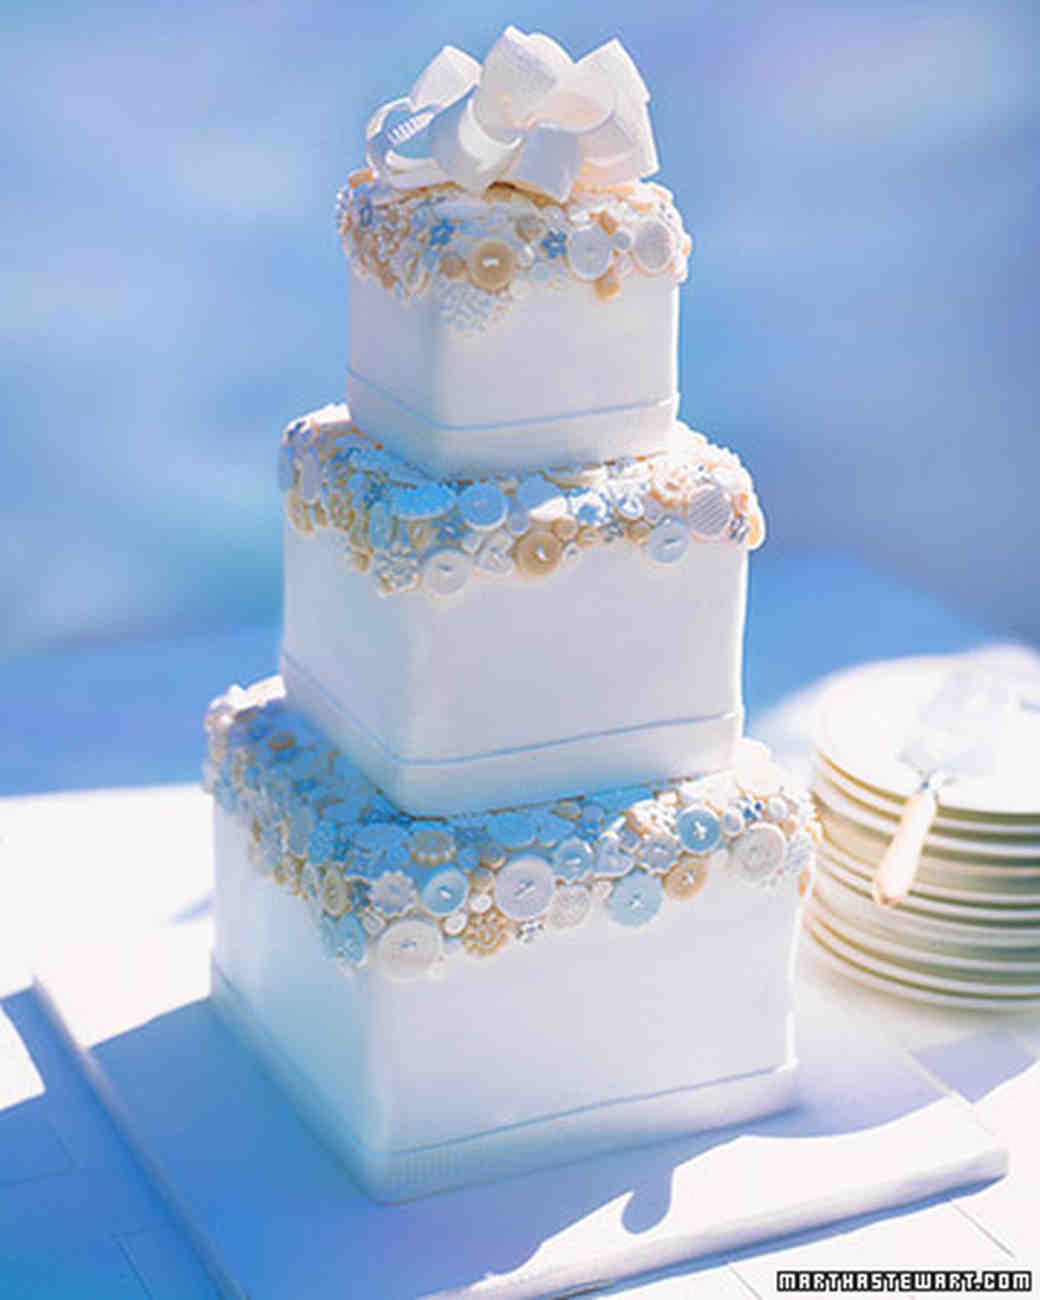 wed_ws97_couturecakes_04.jpg